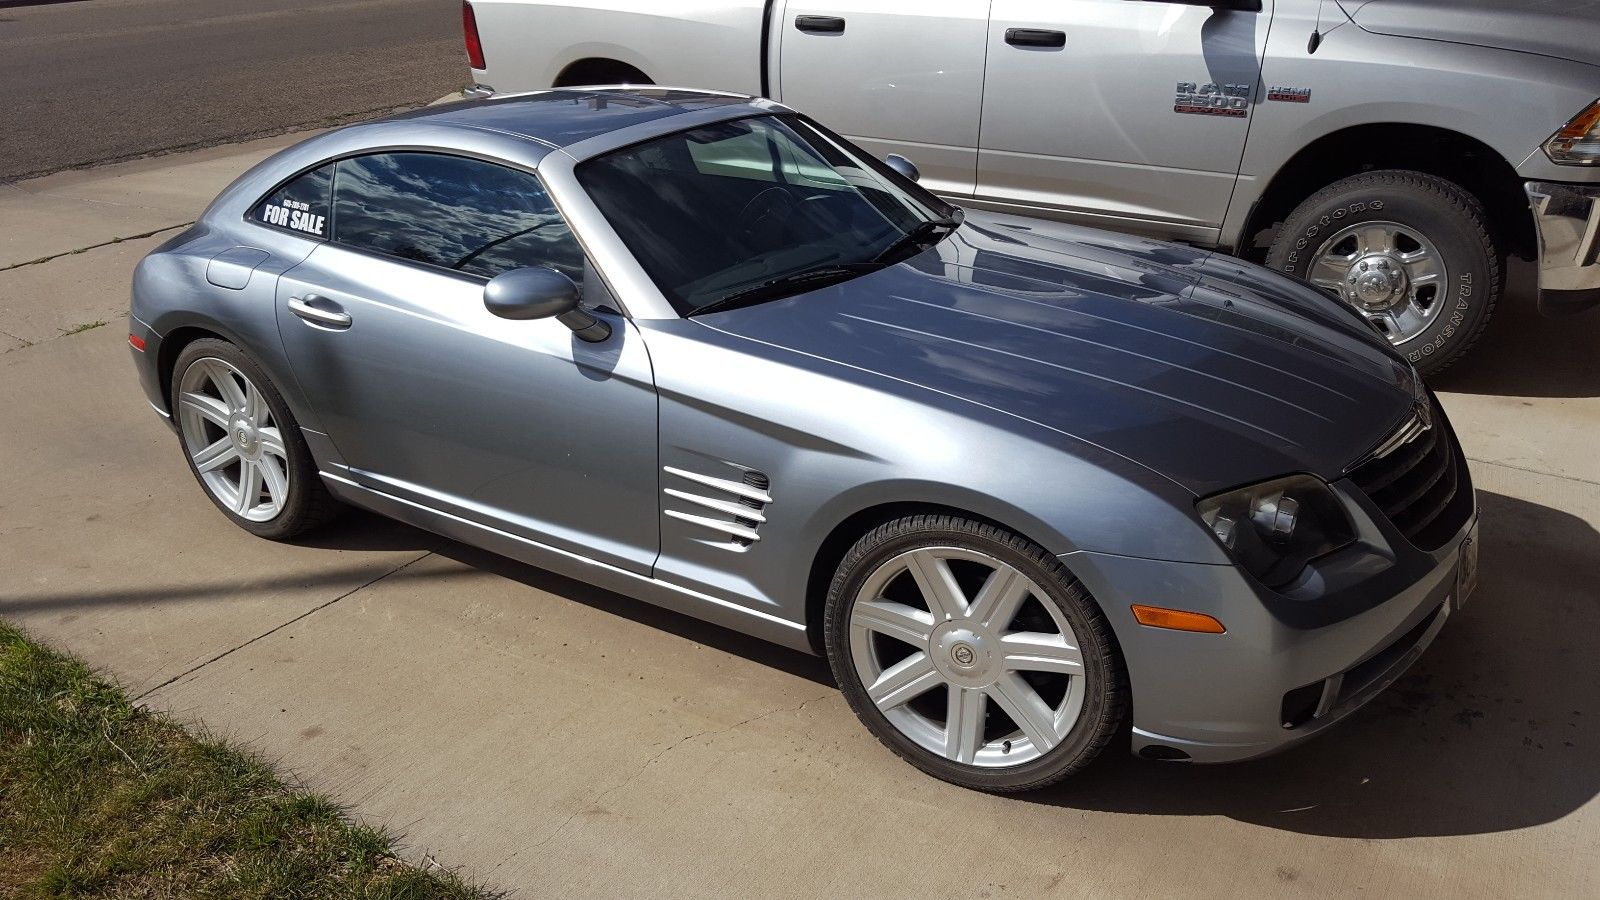 for sale 2004 chrysler crossfire with a 5 3 l lsx v8 engine swap depot. Black Bedroom Furniture Sets. Home Design Ideas